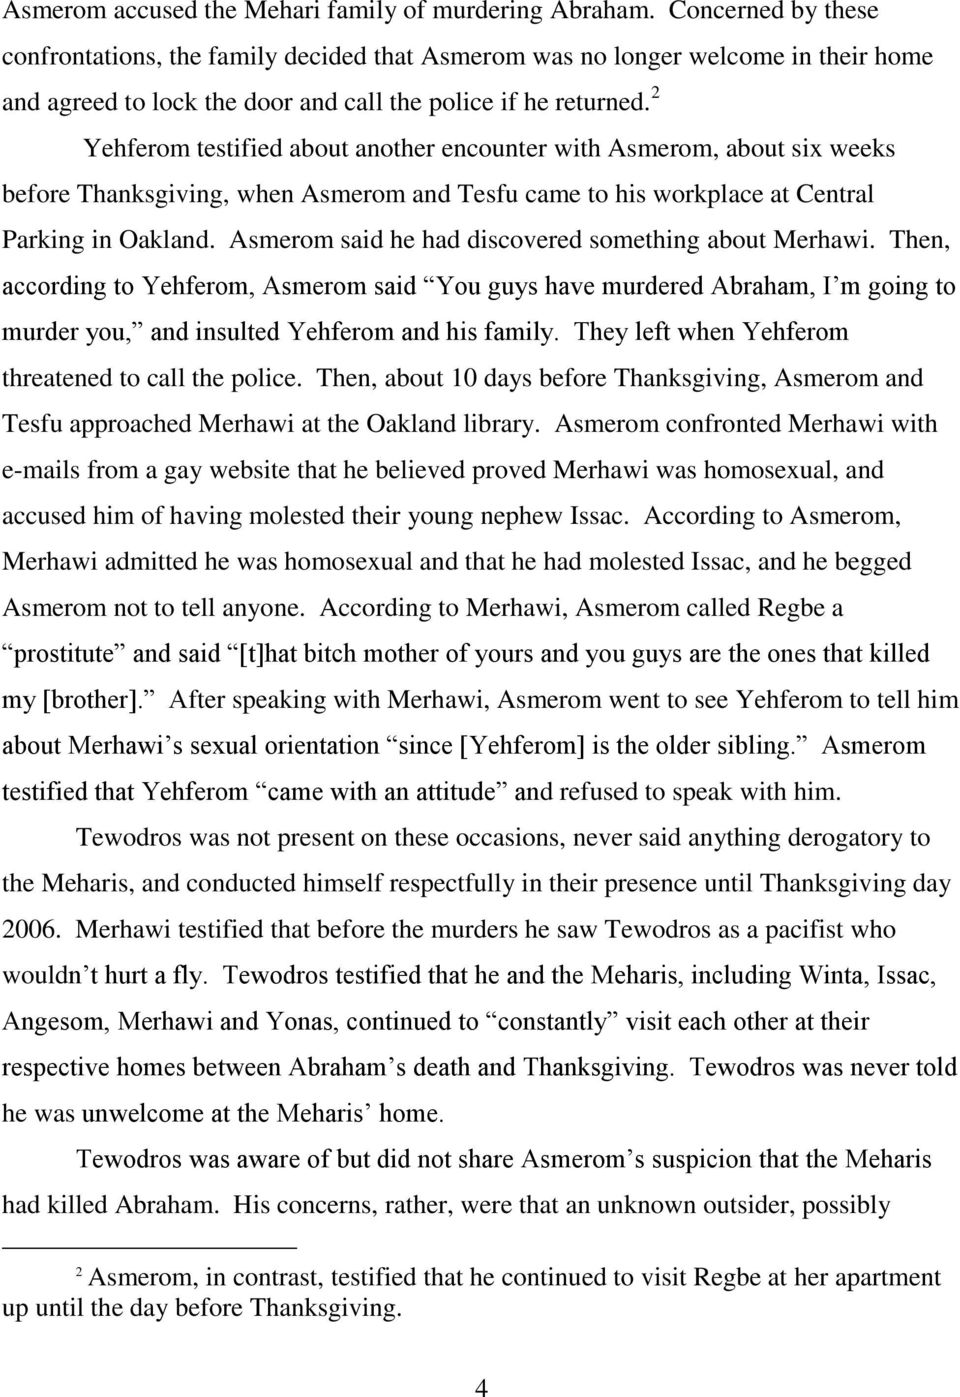 2 Yehferom testified about another encounter with Asmerom, about six weeks before Thanksgiving, when Asmerom and Tesfu came to his workplace at Central Parking in Oakland.